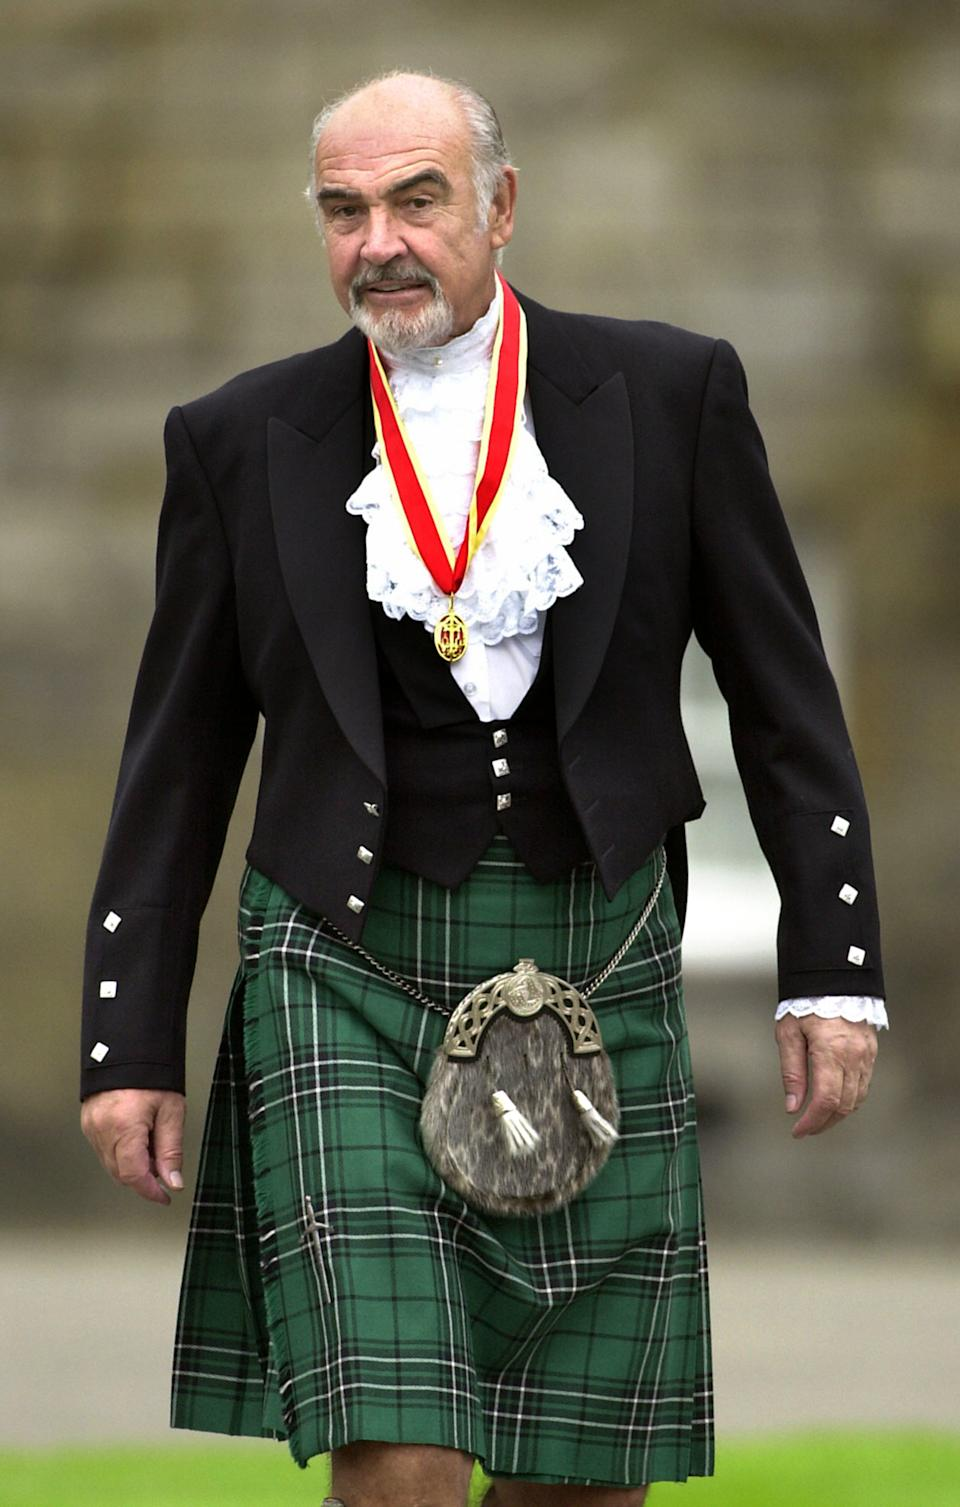 Connery wears full Highland dress and his medal after he was formally knighted by the queen in July 2000. (Photo: David Cheskin/PA Archive)